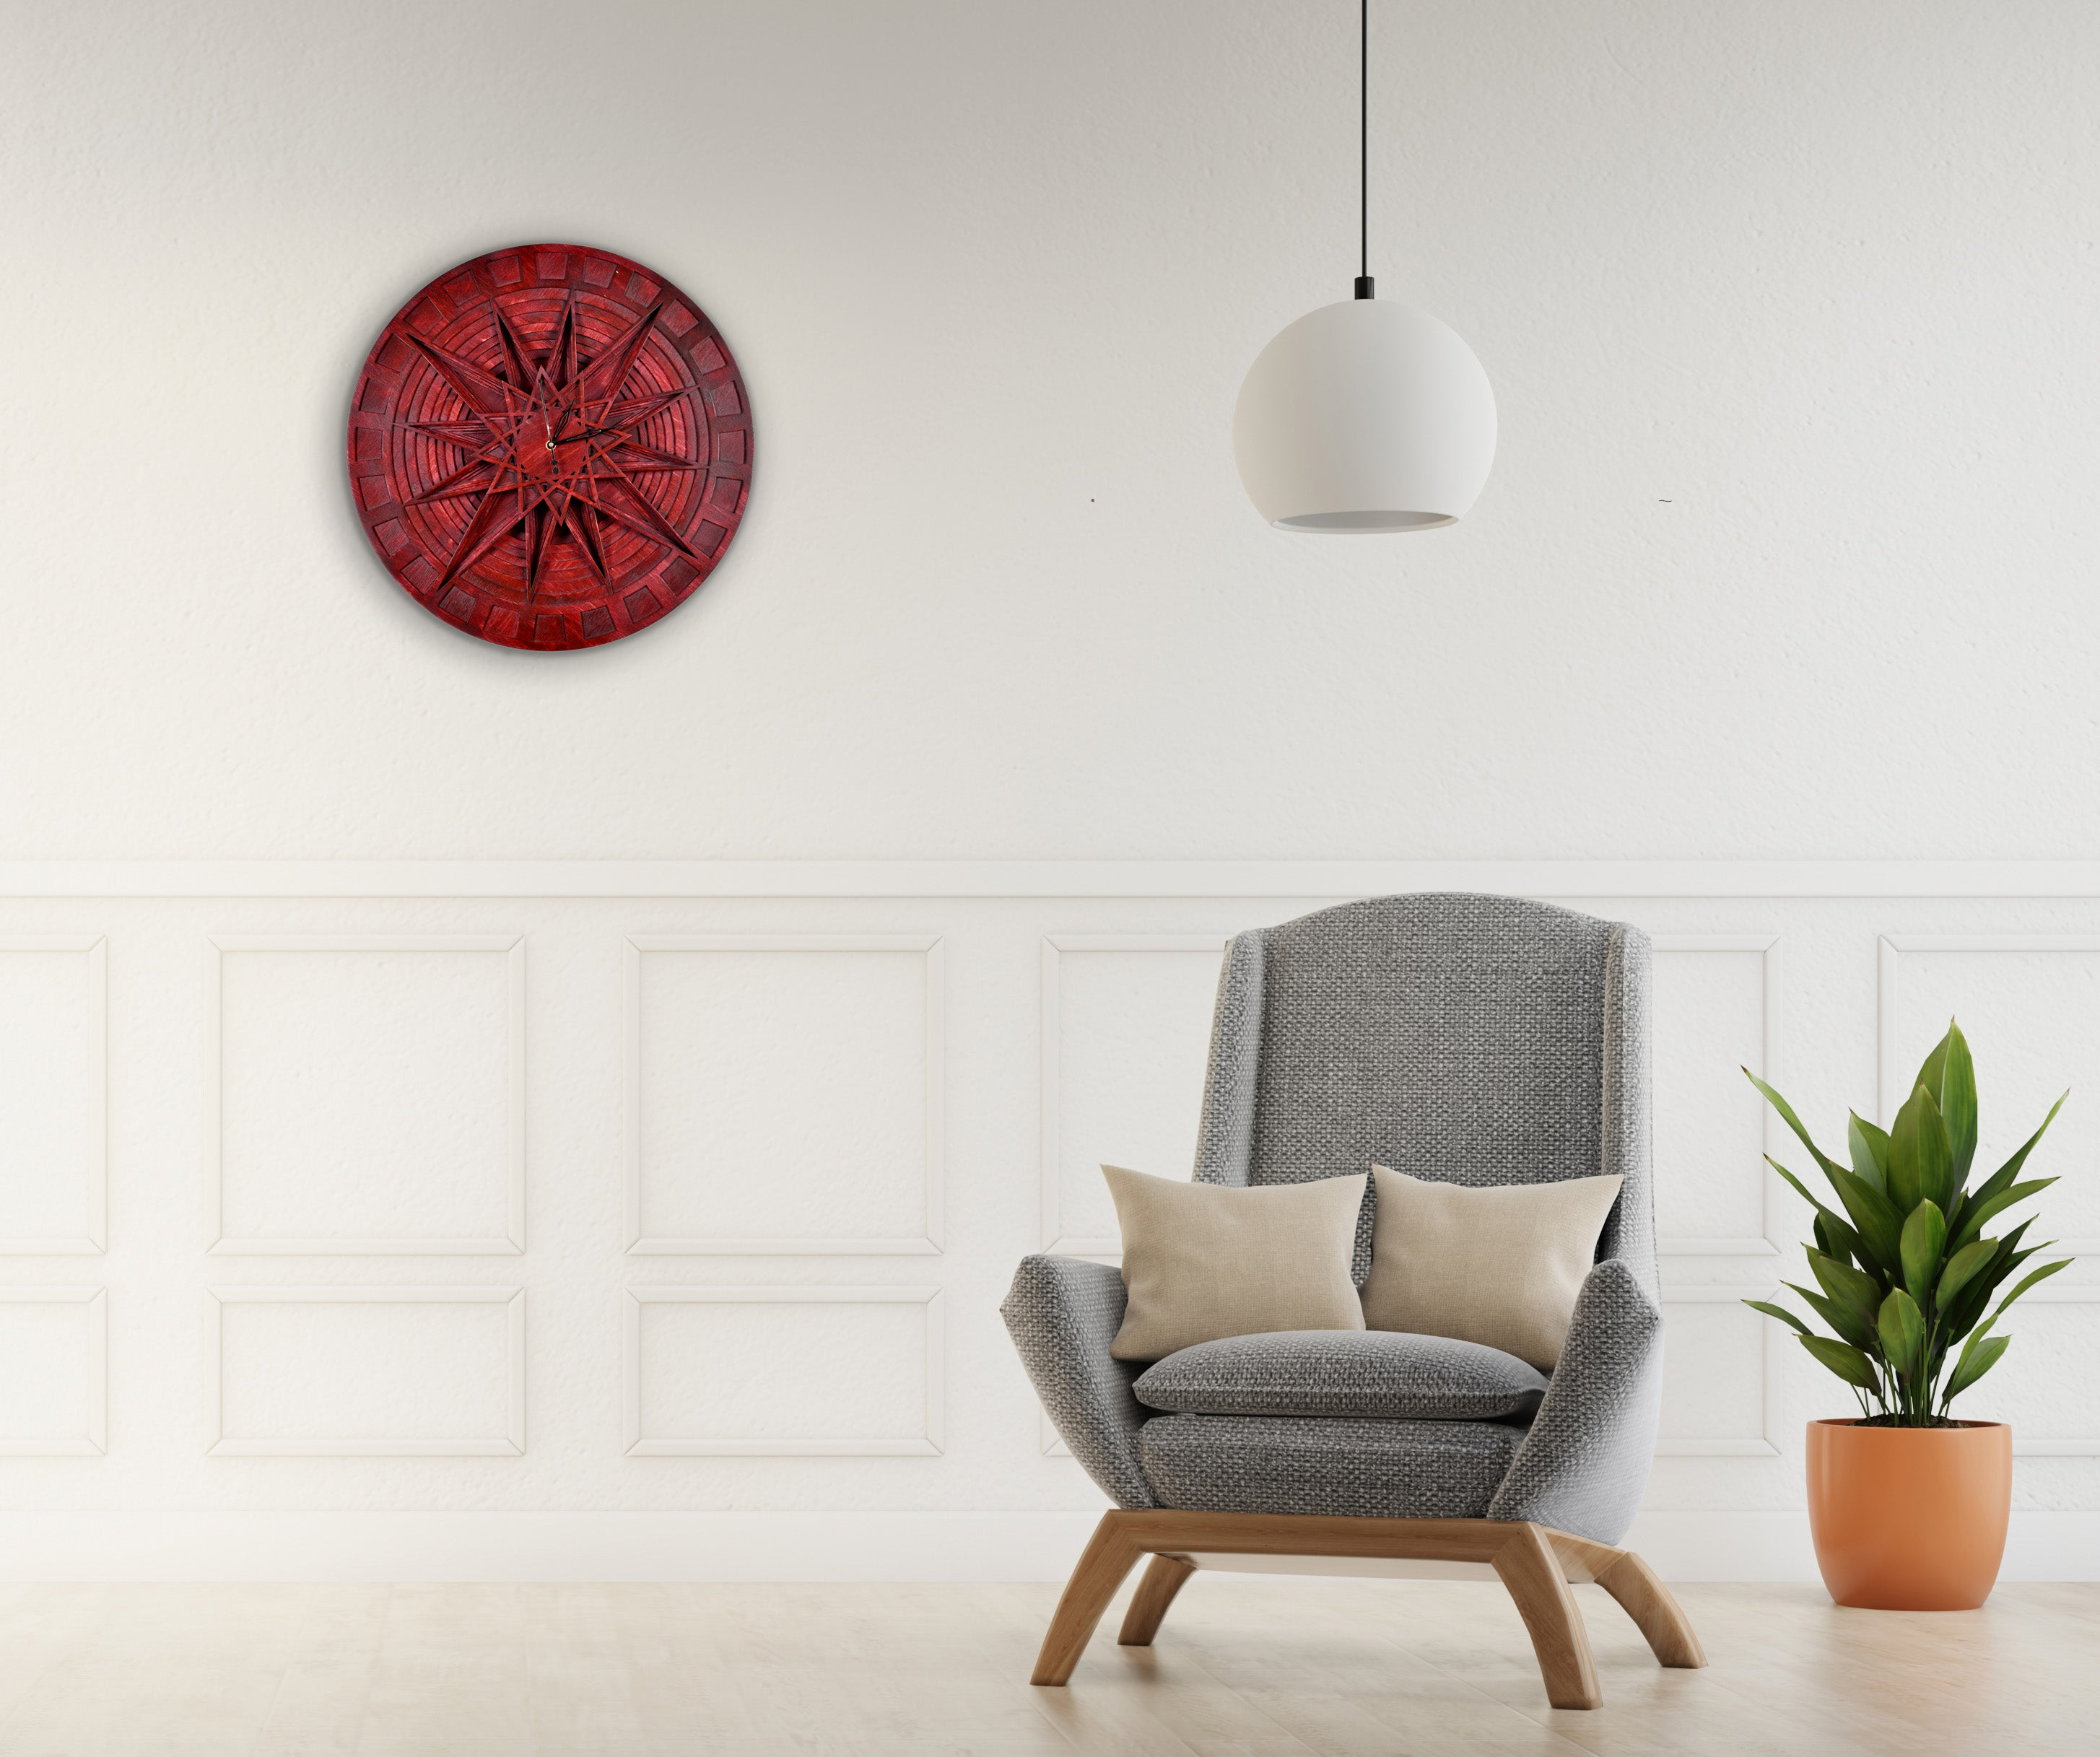 Time Depth - Qreative Qick Wall Clock | Wooden Wall Art | Vintage Clocks | Clocks to Gift | Geometry Clock | Wooden Clocks| Decor